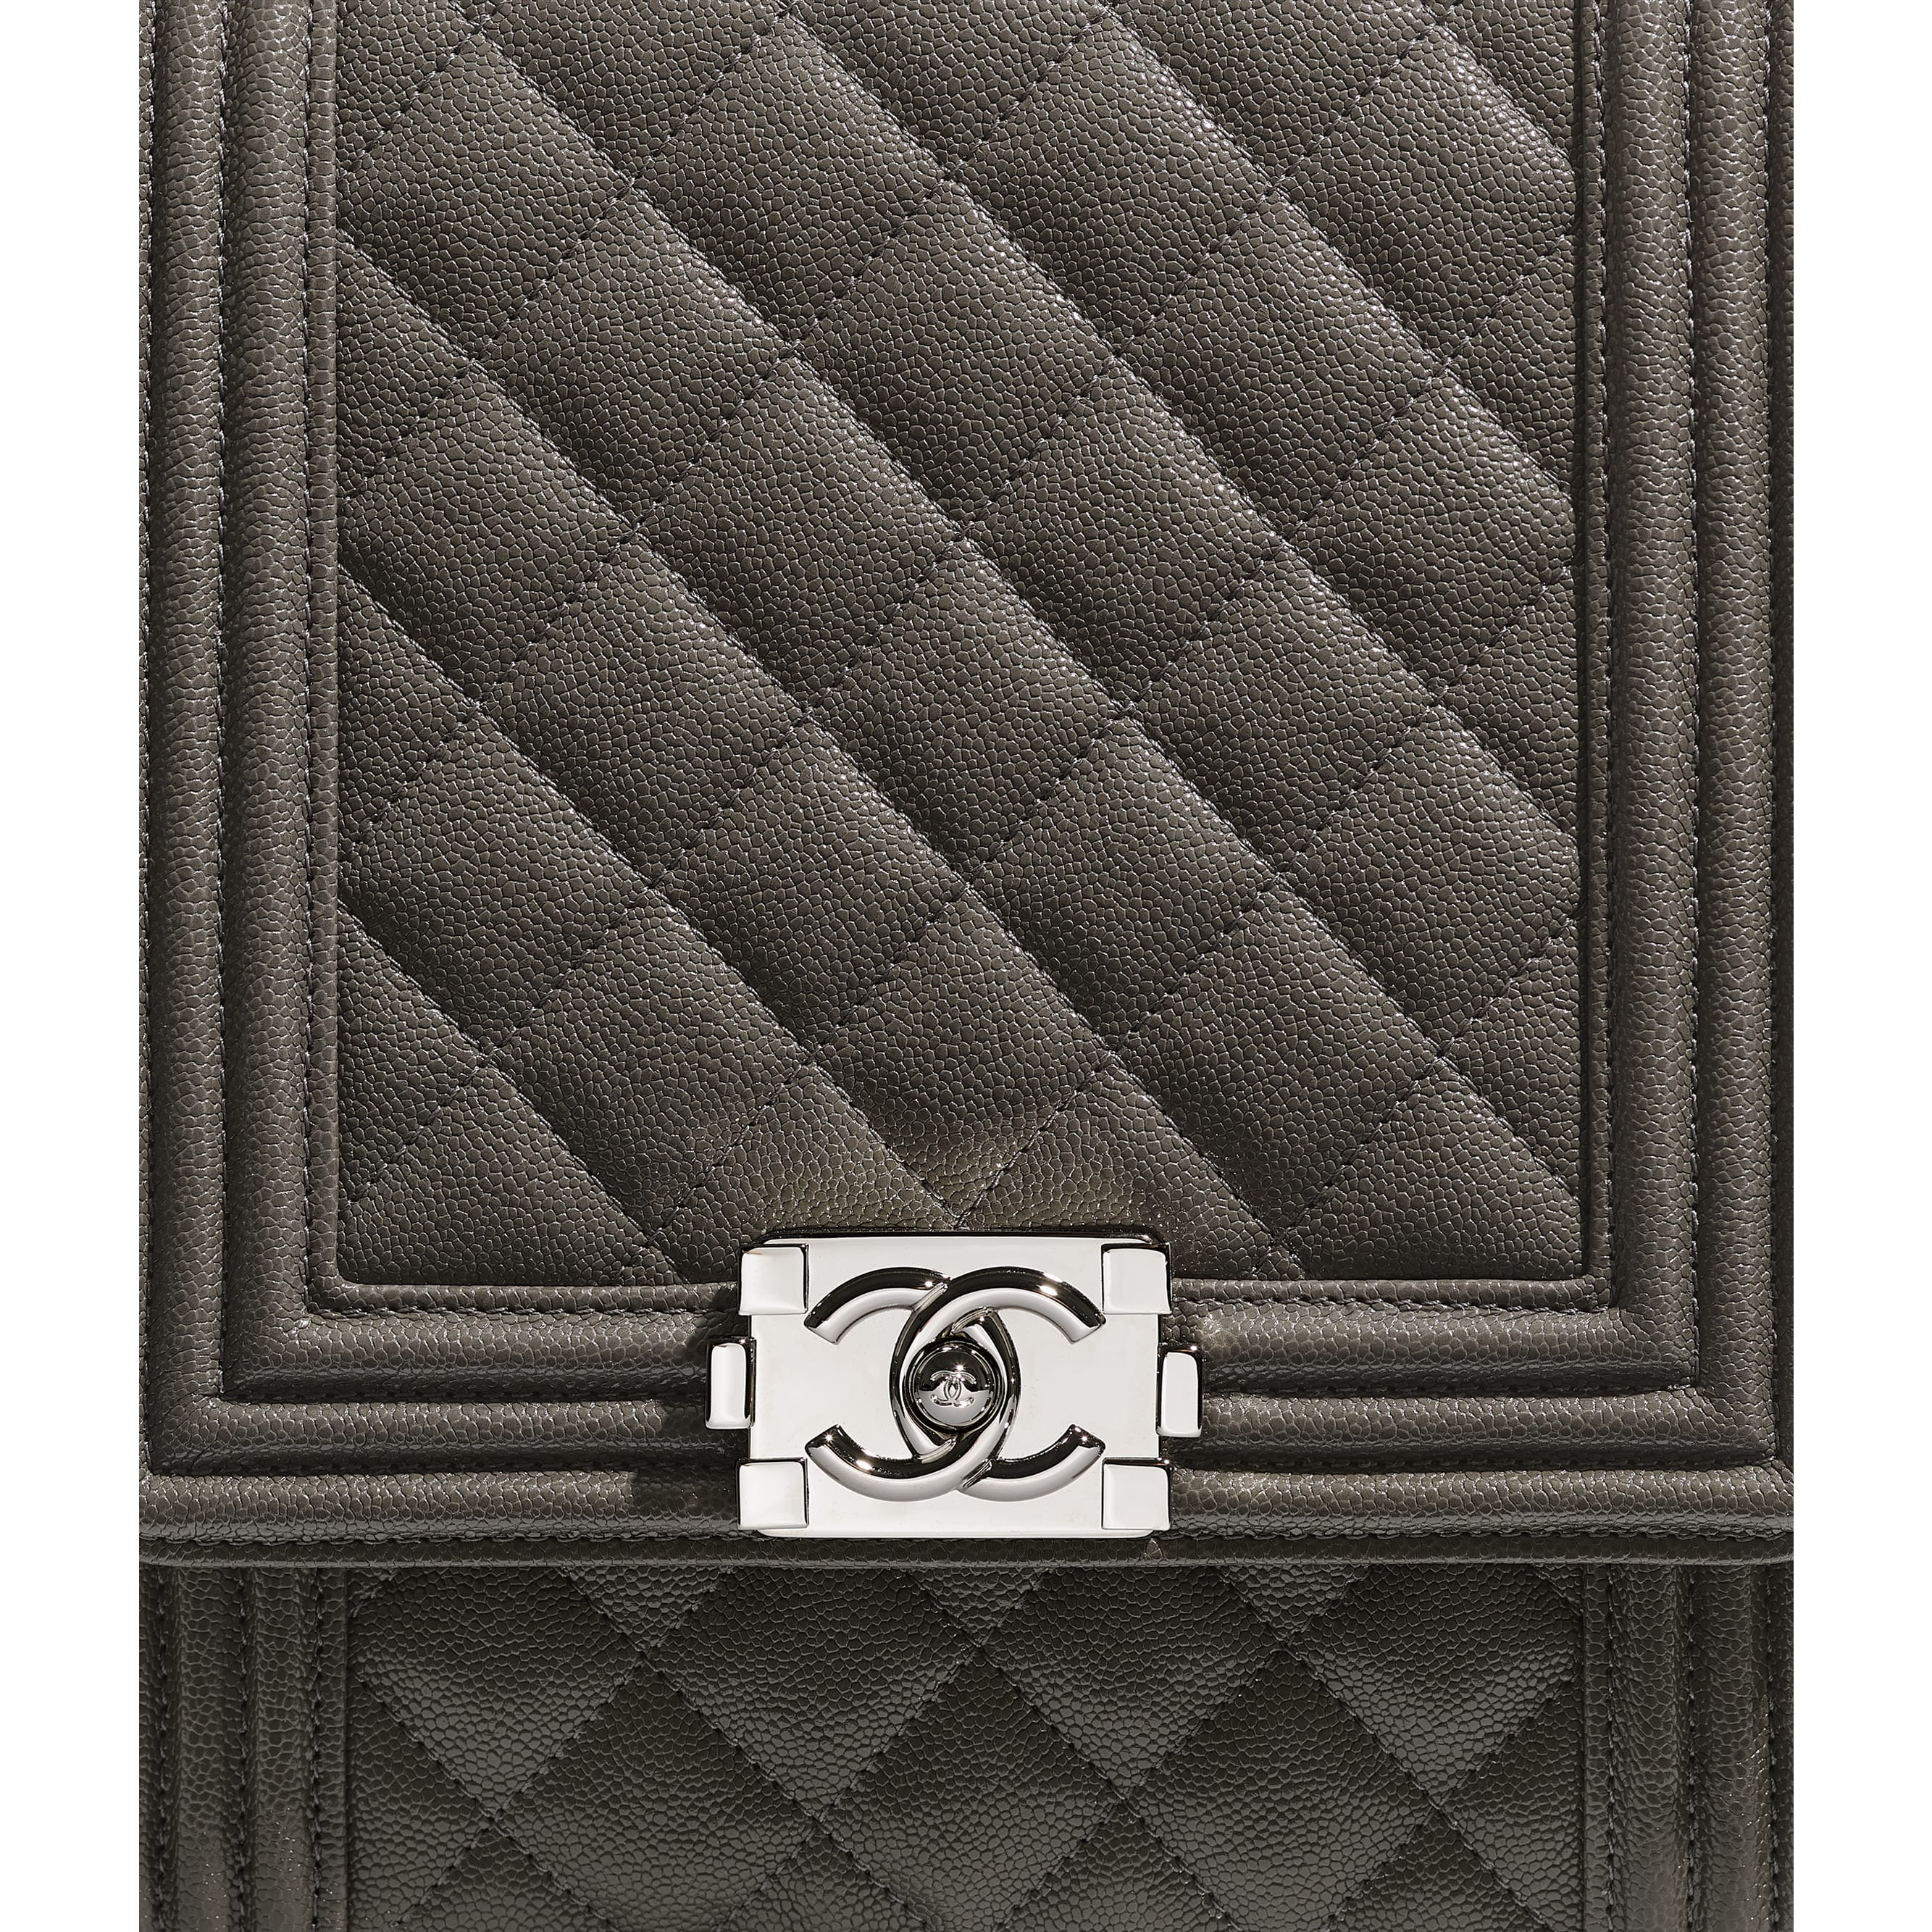 BOY CHANEL Handbag - Grey - Grained Calfskin & Silver Metal - Extra view - see standard sized version